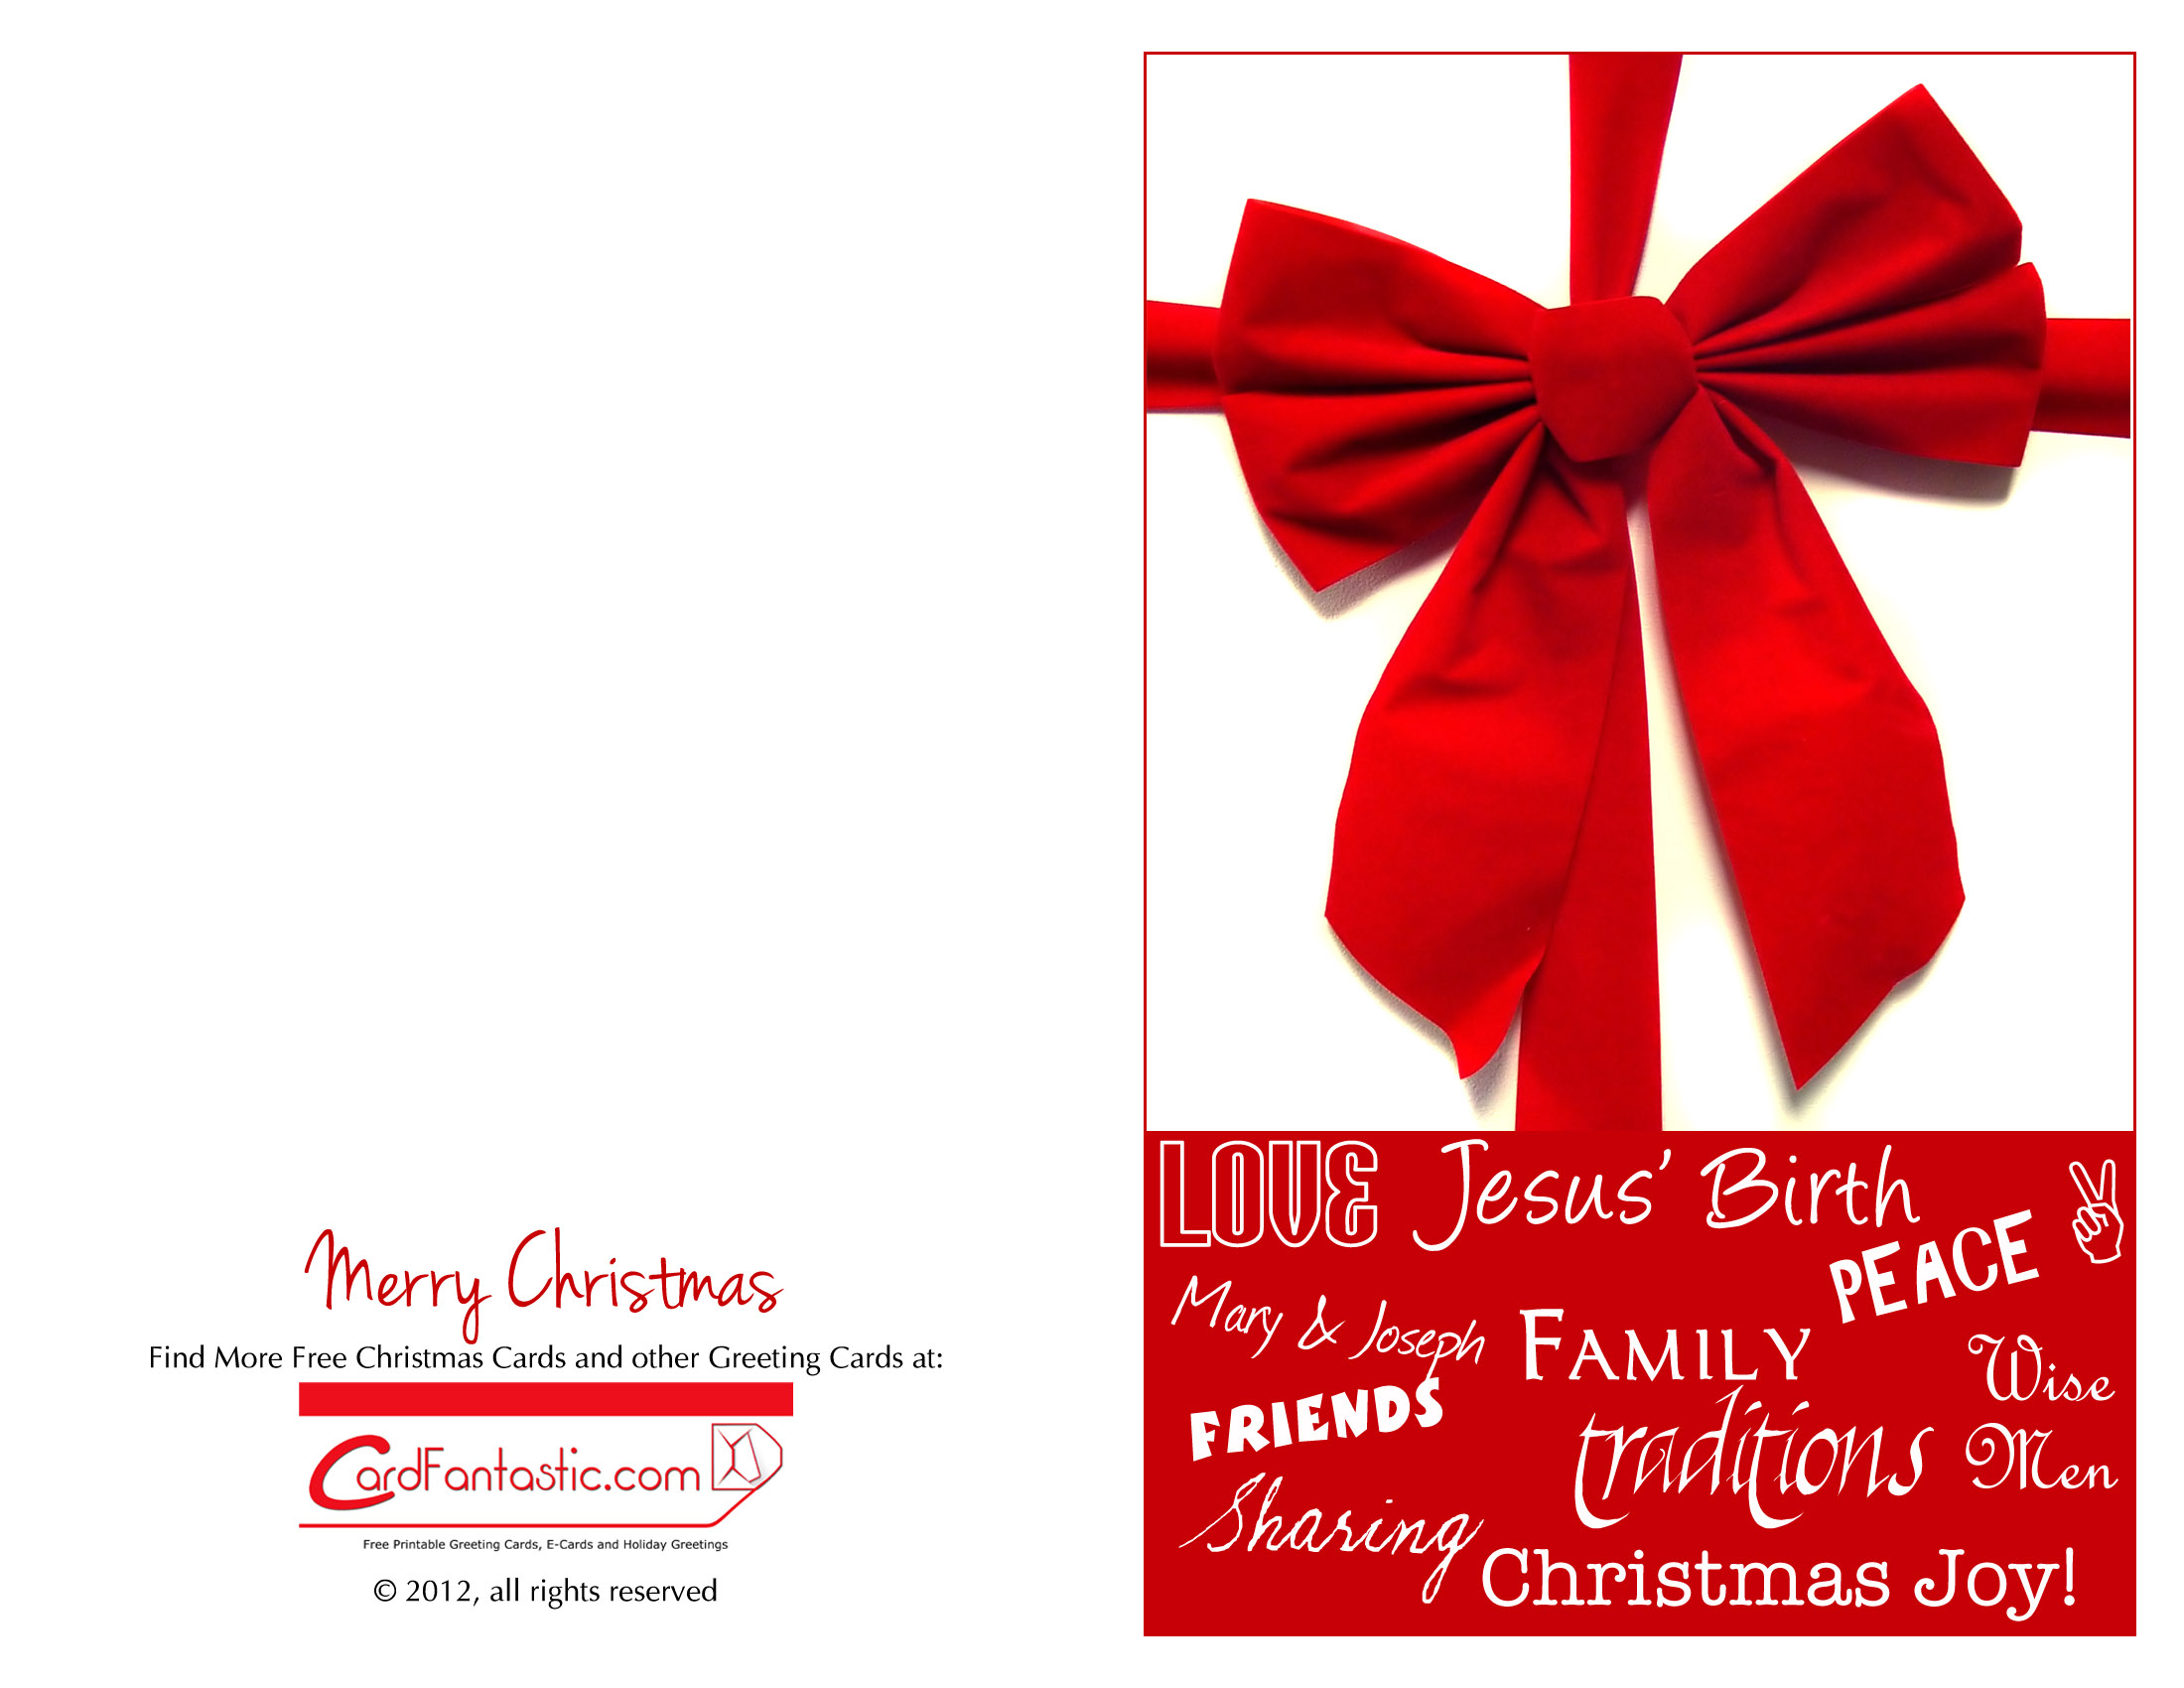 Chirstmas Cards - Download Free Greeting Cards And E-Cards - Free Printable Quarter Fold Christmas Cards